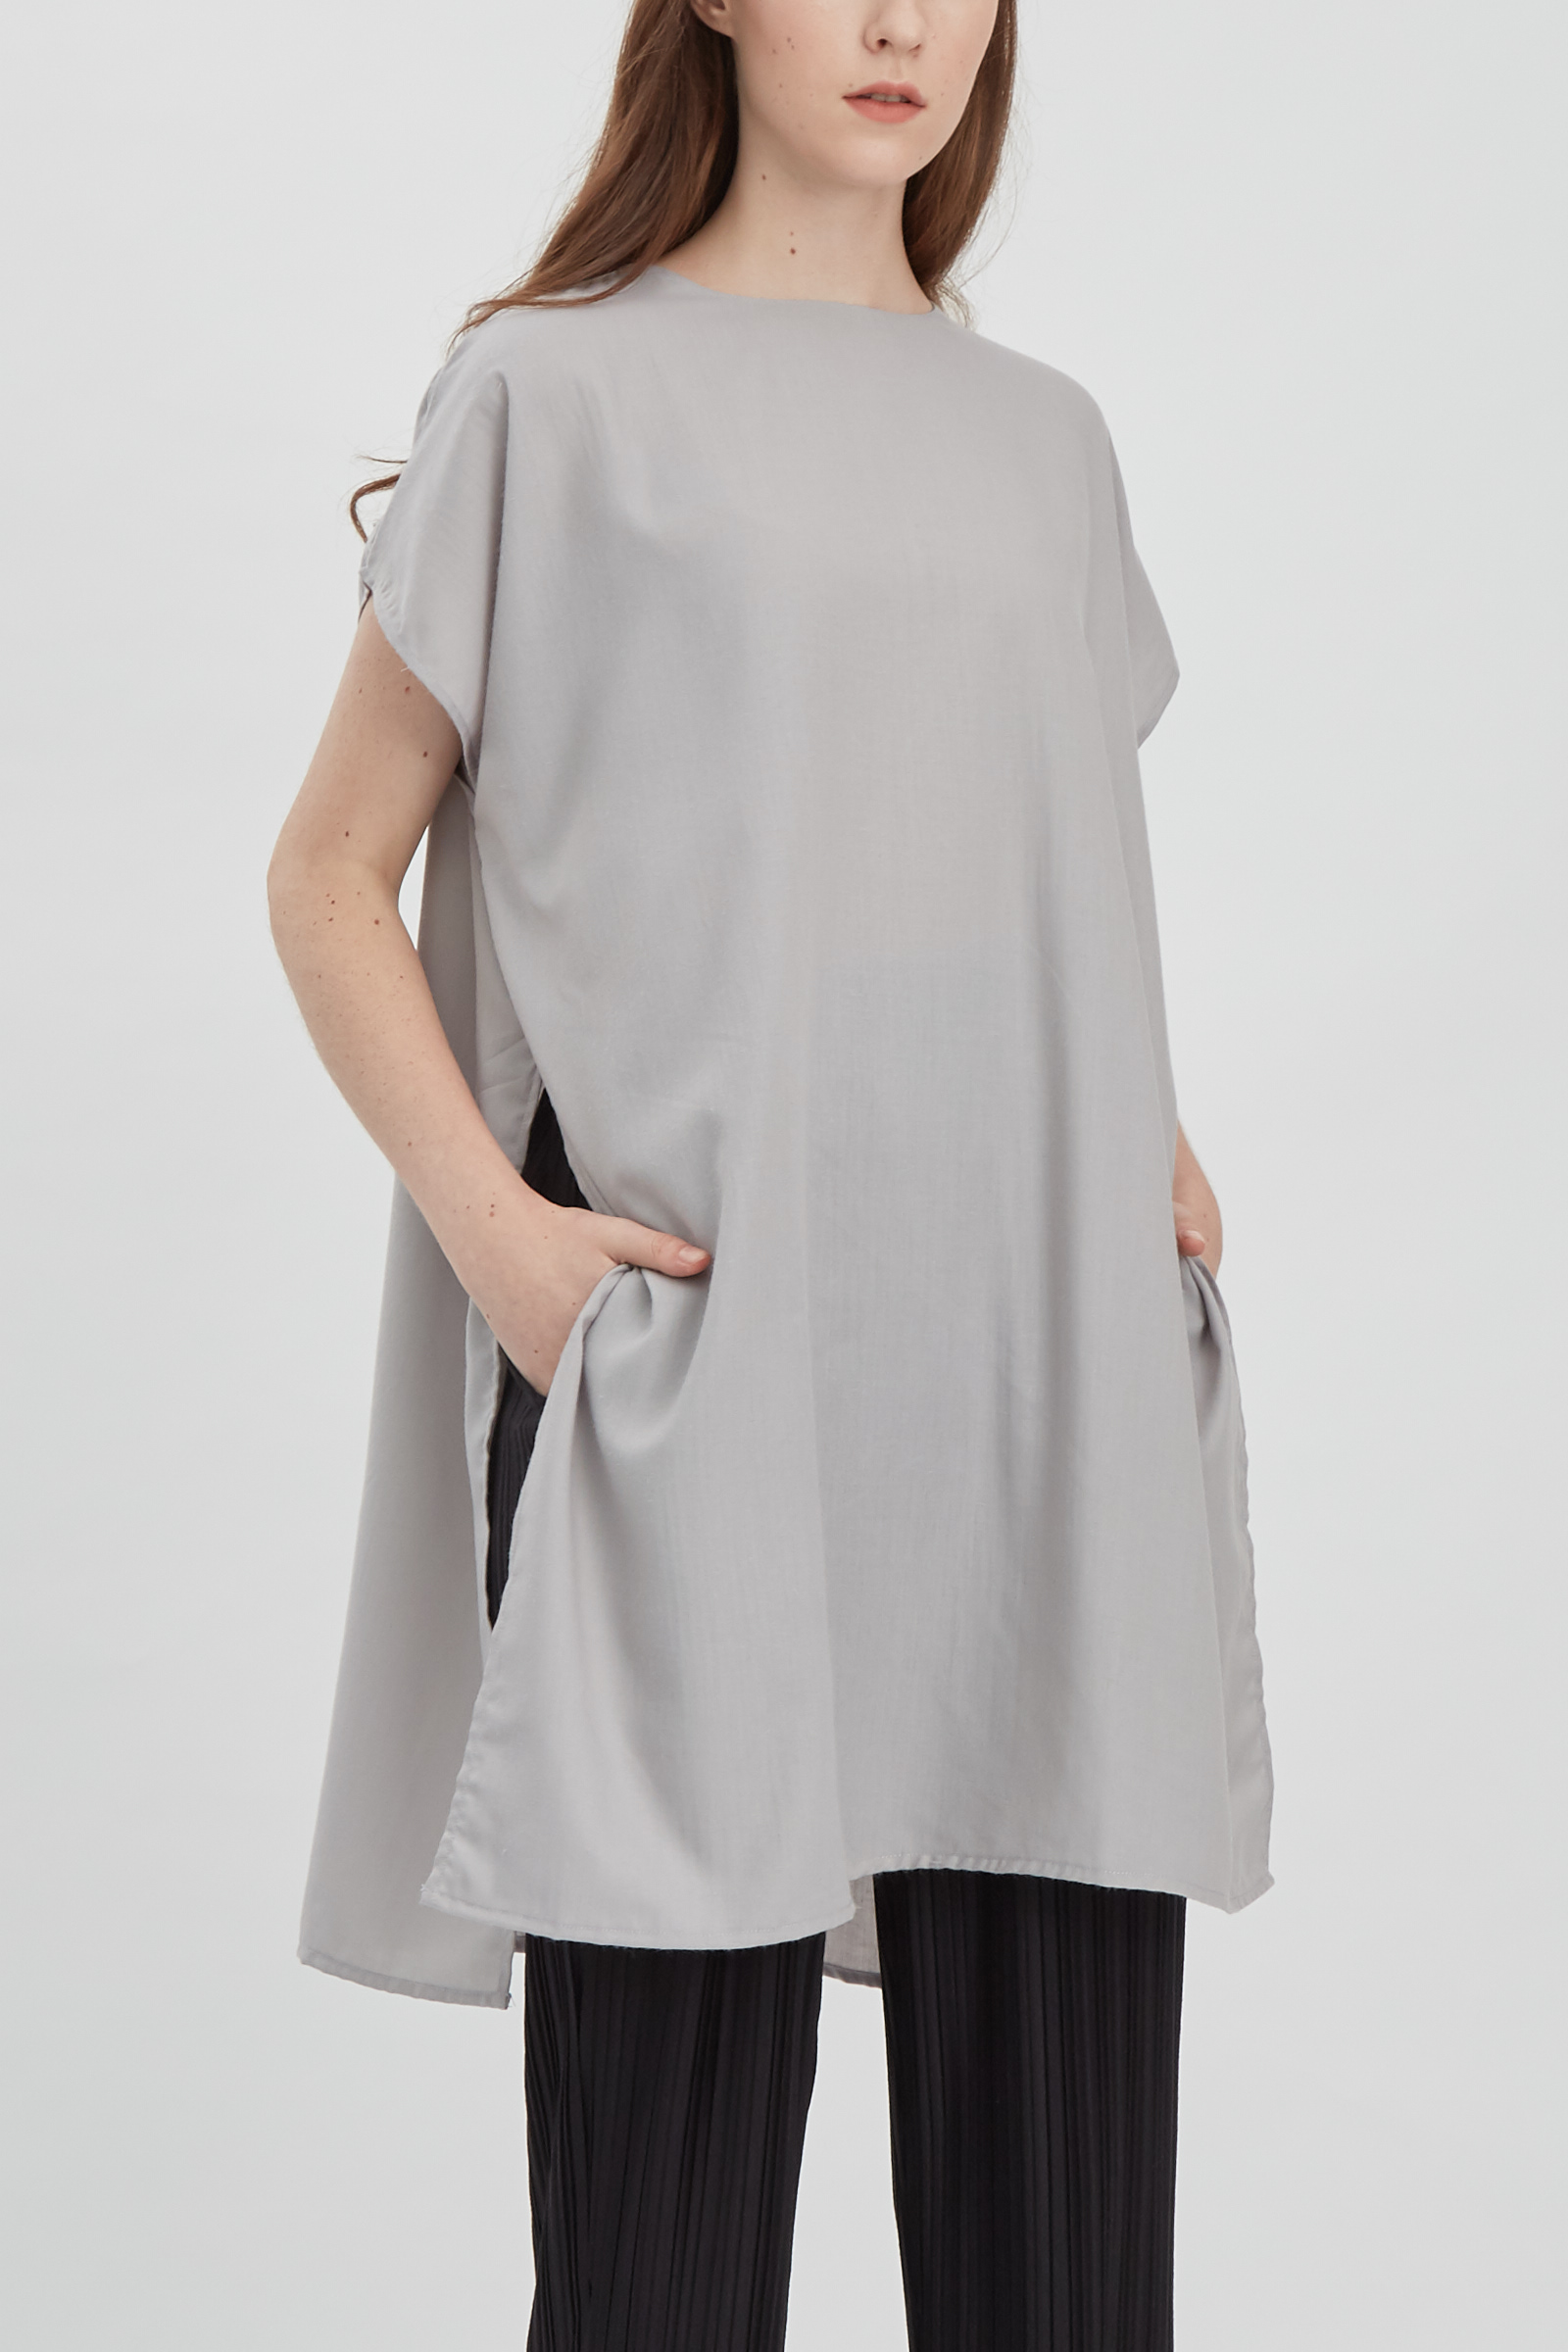 Shopatvelvet Mind Top Light Gray